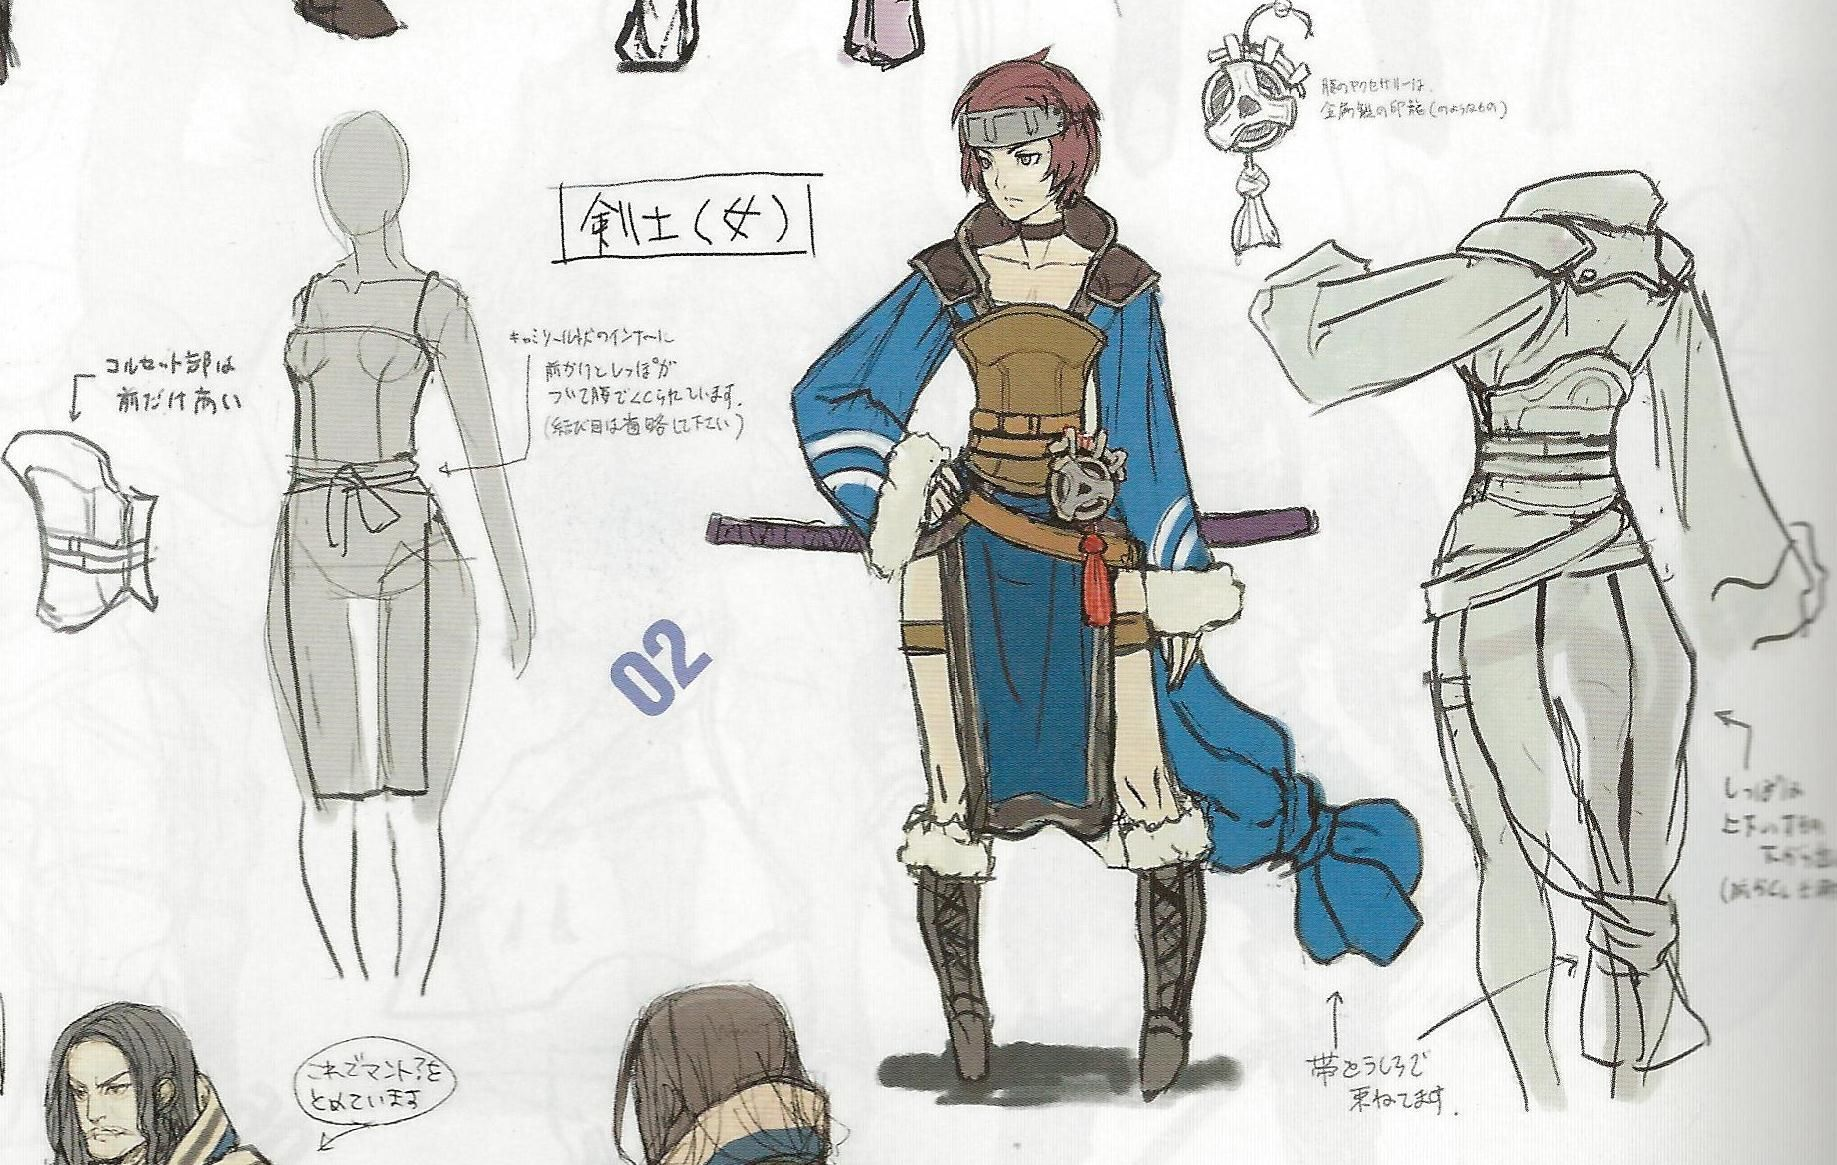 Myrmidon | Art Poses in 2019 | Fire emblem classes, Fire